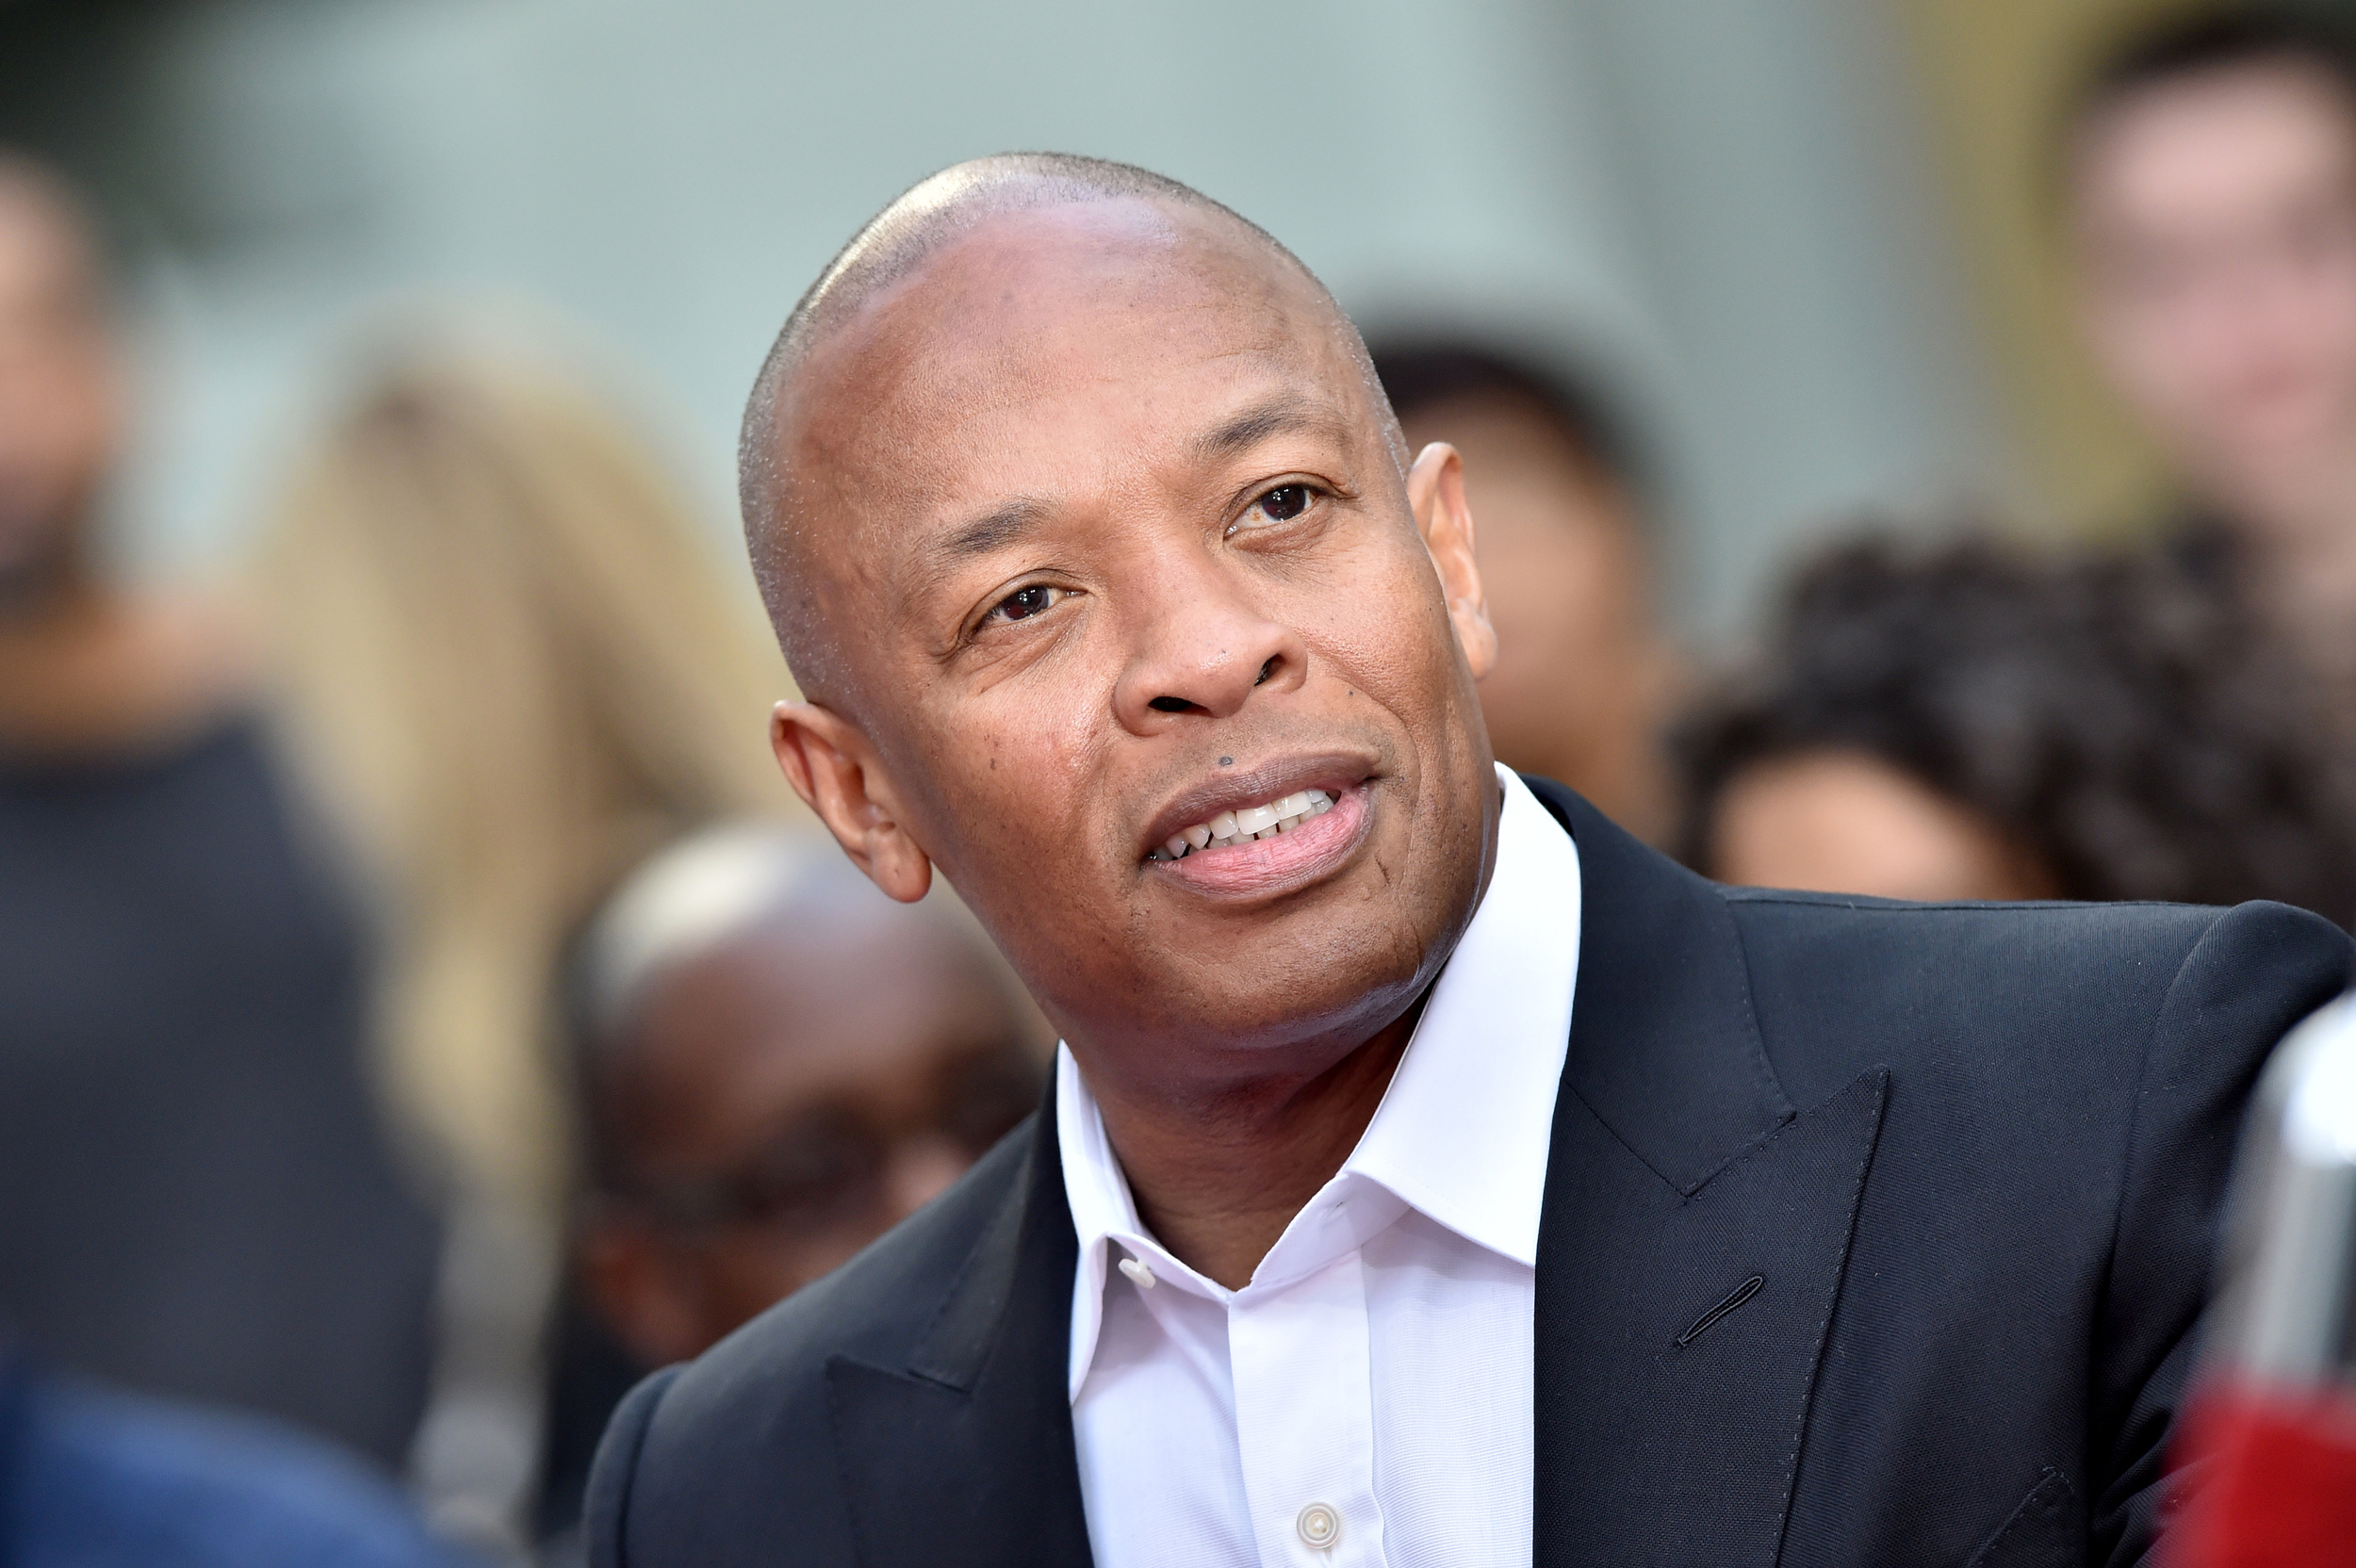 nbcnews.com - Dr. Dre deletes post about daughter's acceptance to USC after $70M donation resurfaces